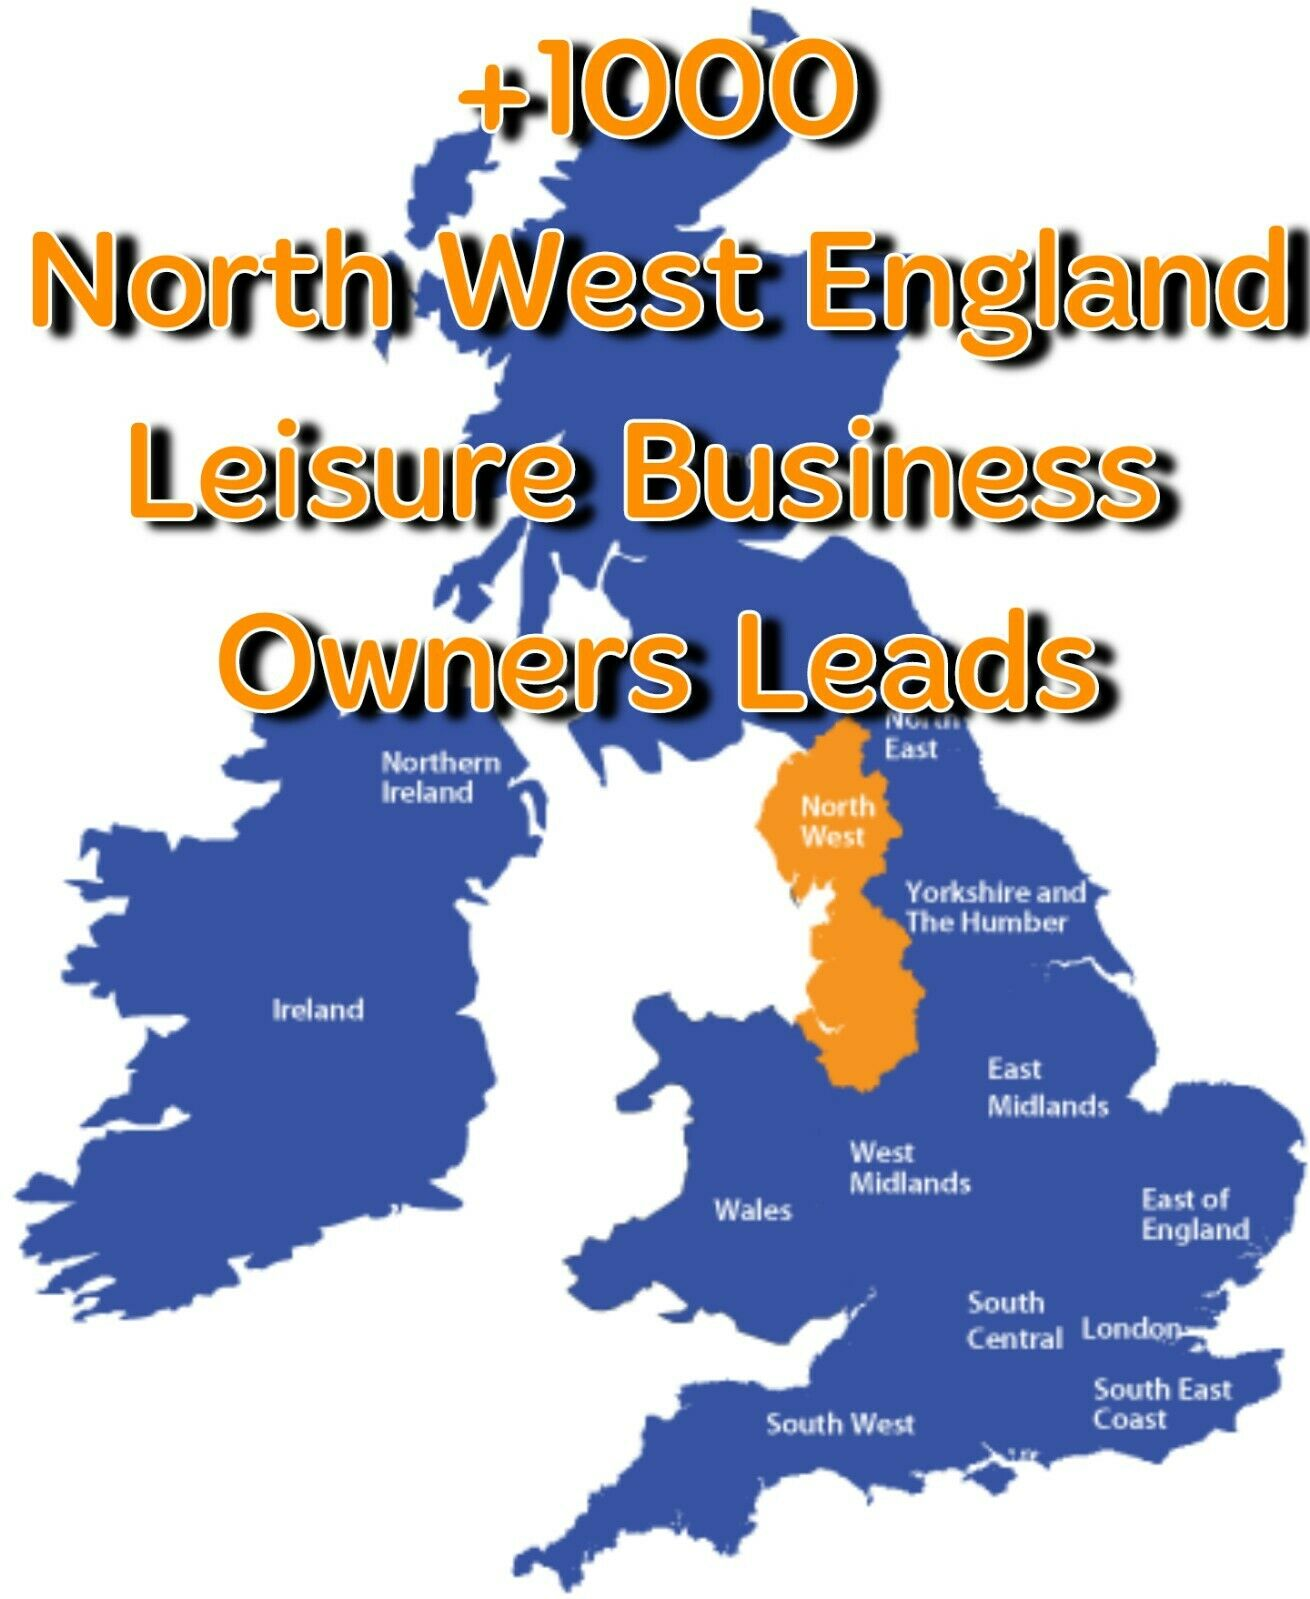 +1000 North West England Leisure Business Owners Leads